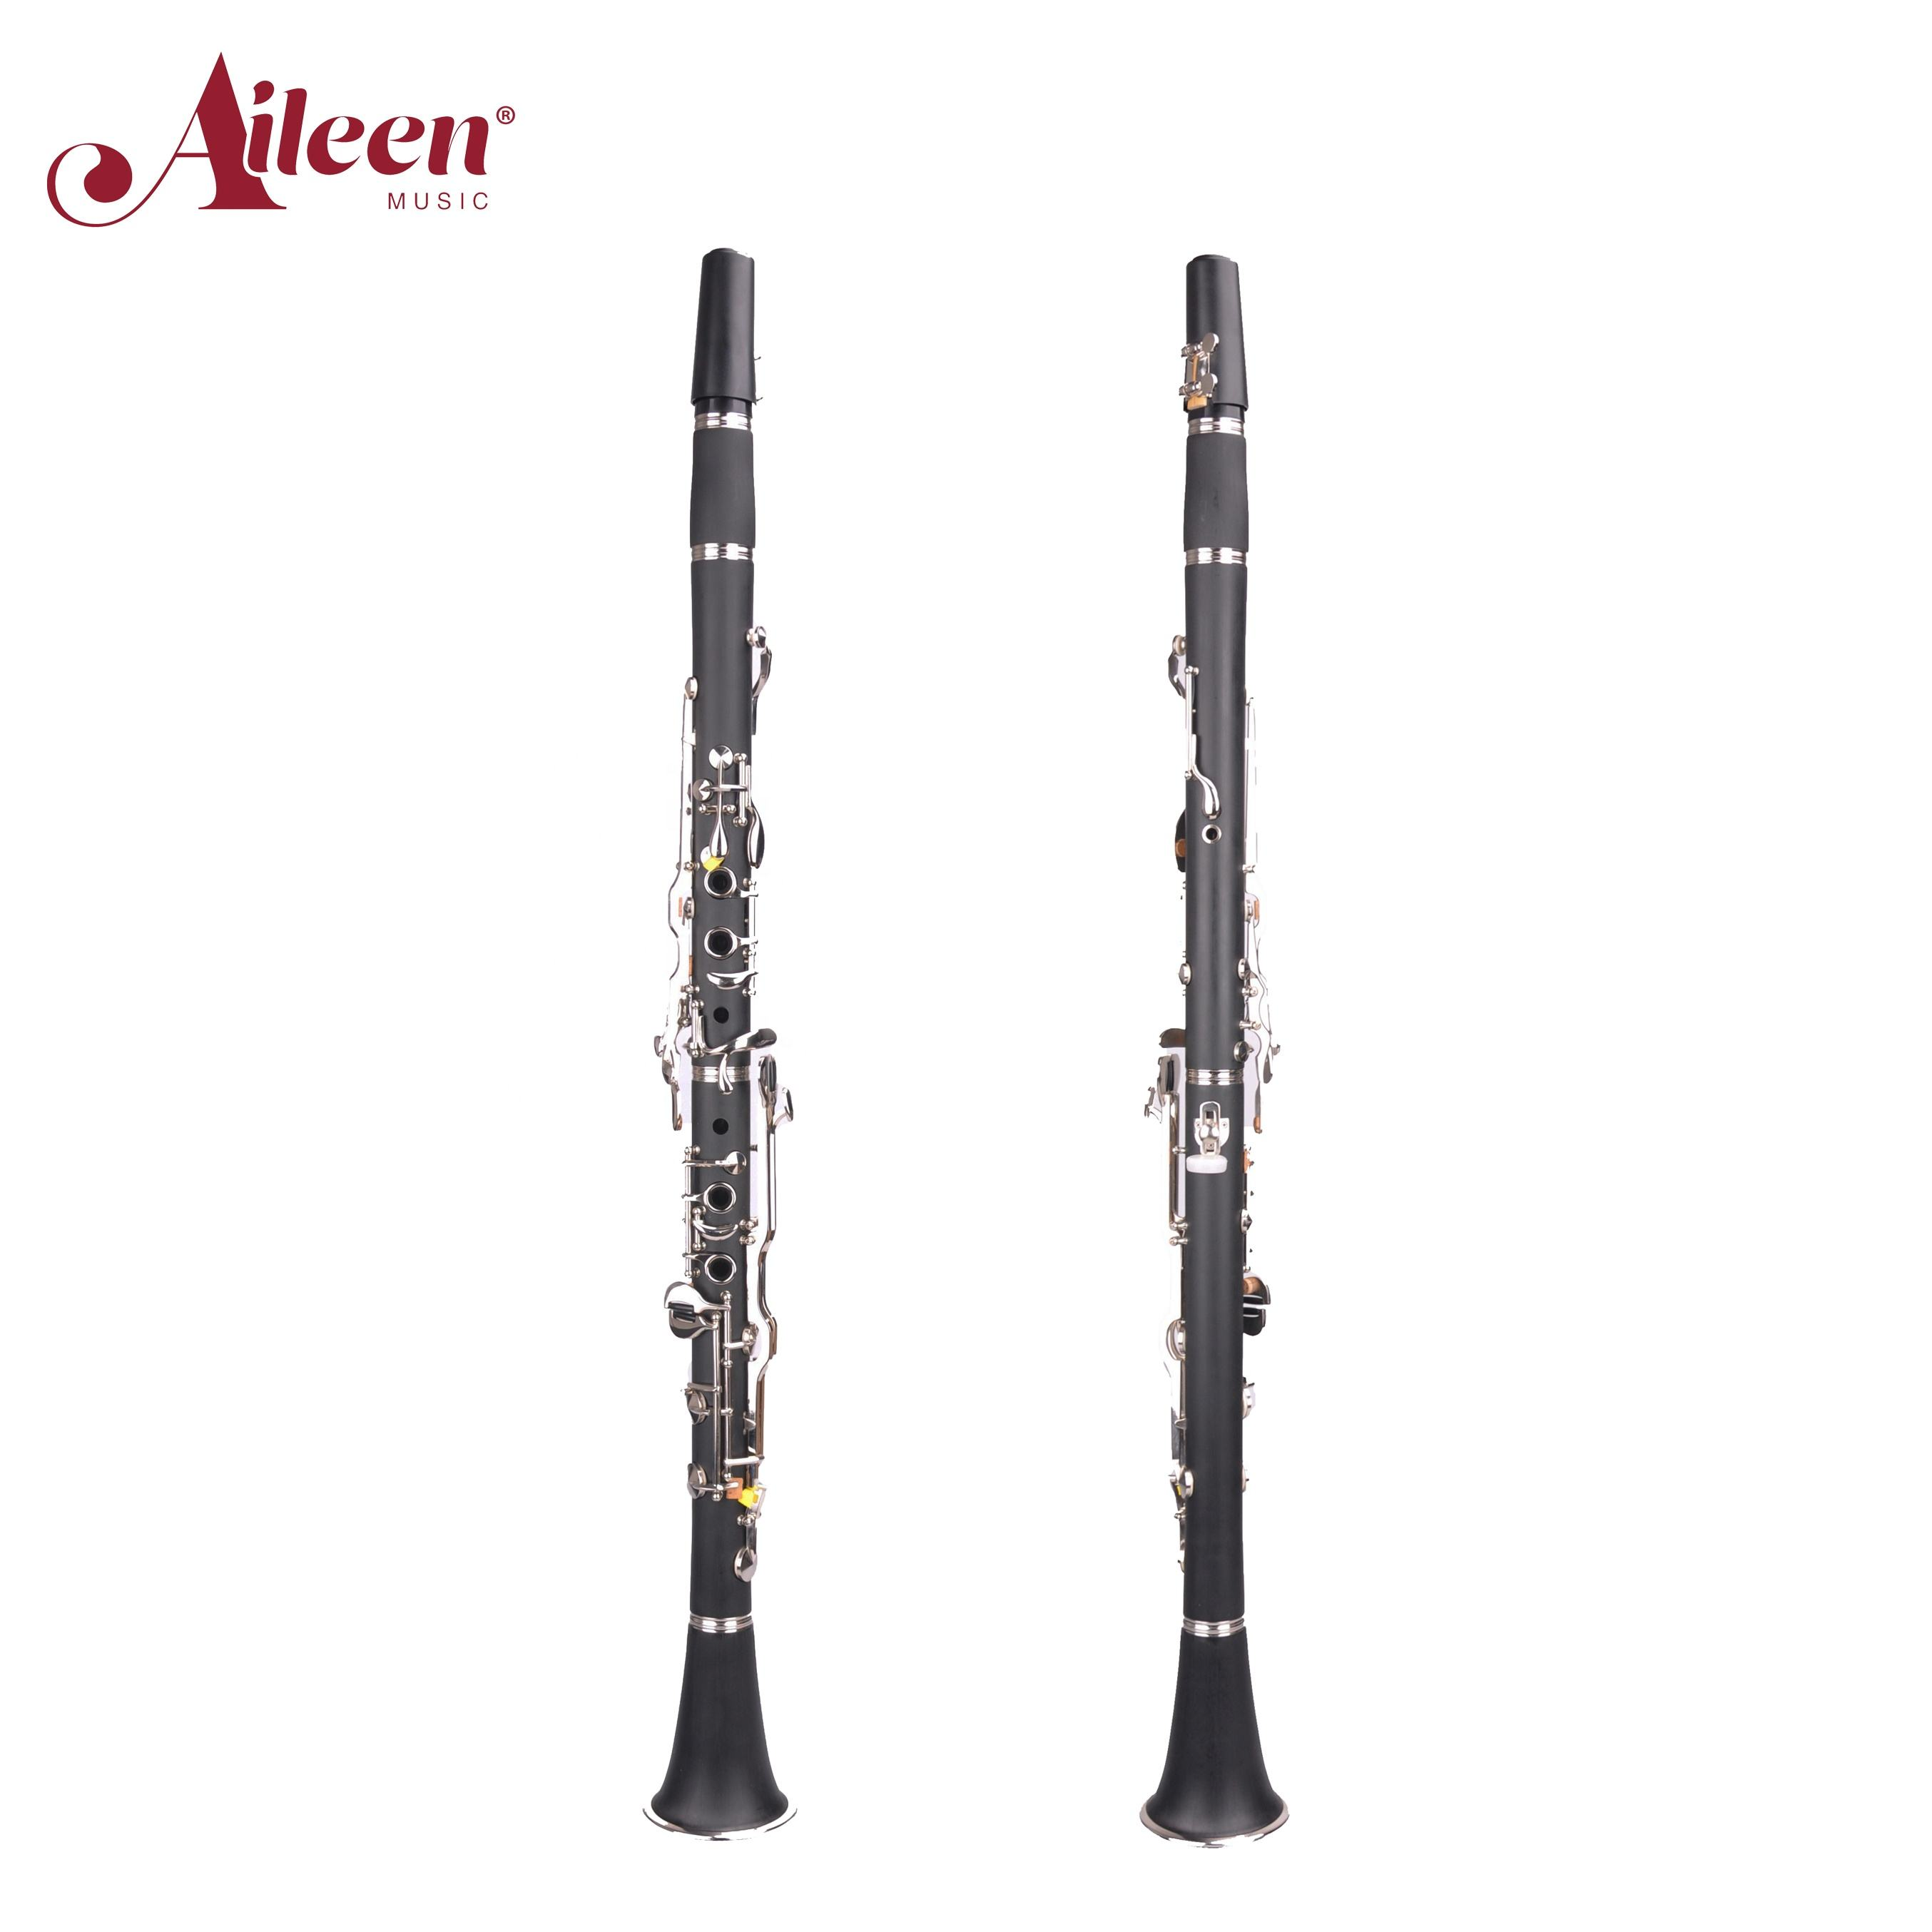 AileenMusic G key 18 Nickel plated keys Germany clarinet (CL-D4592N)